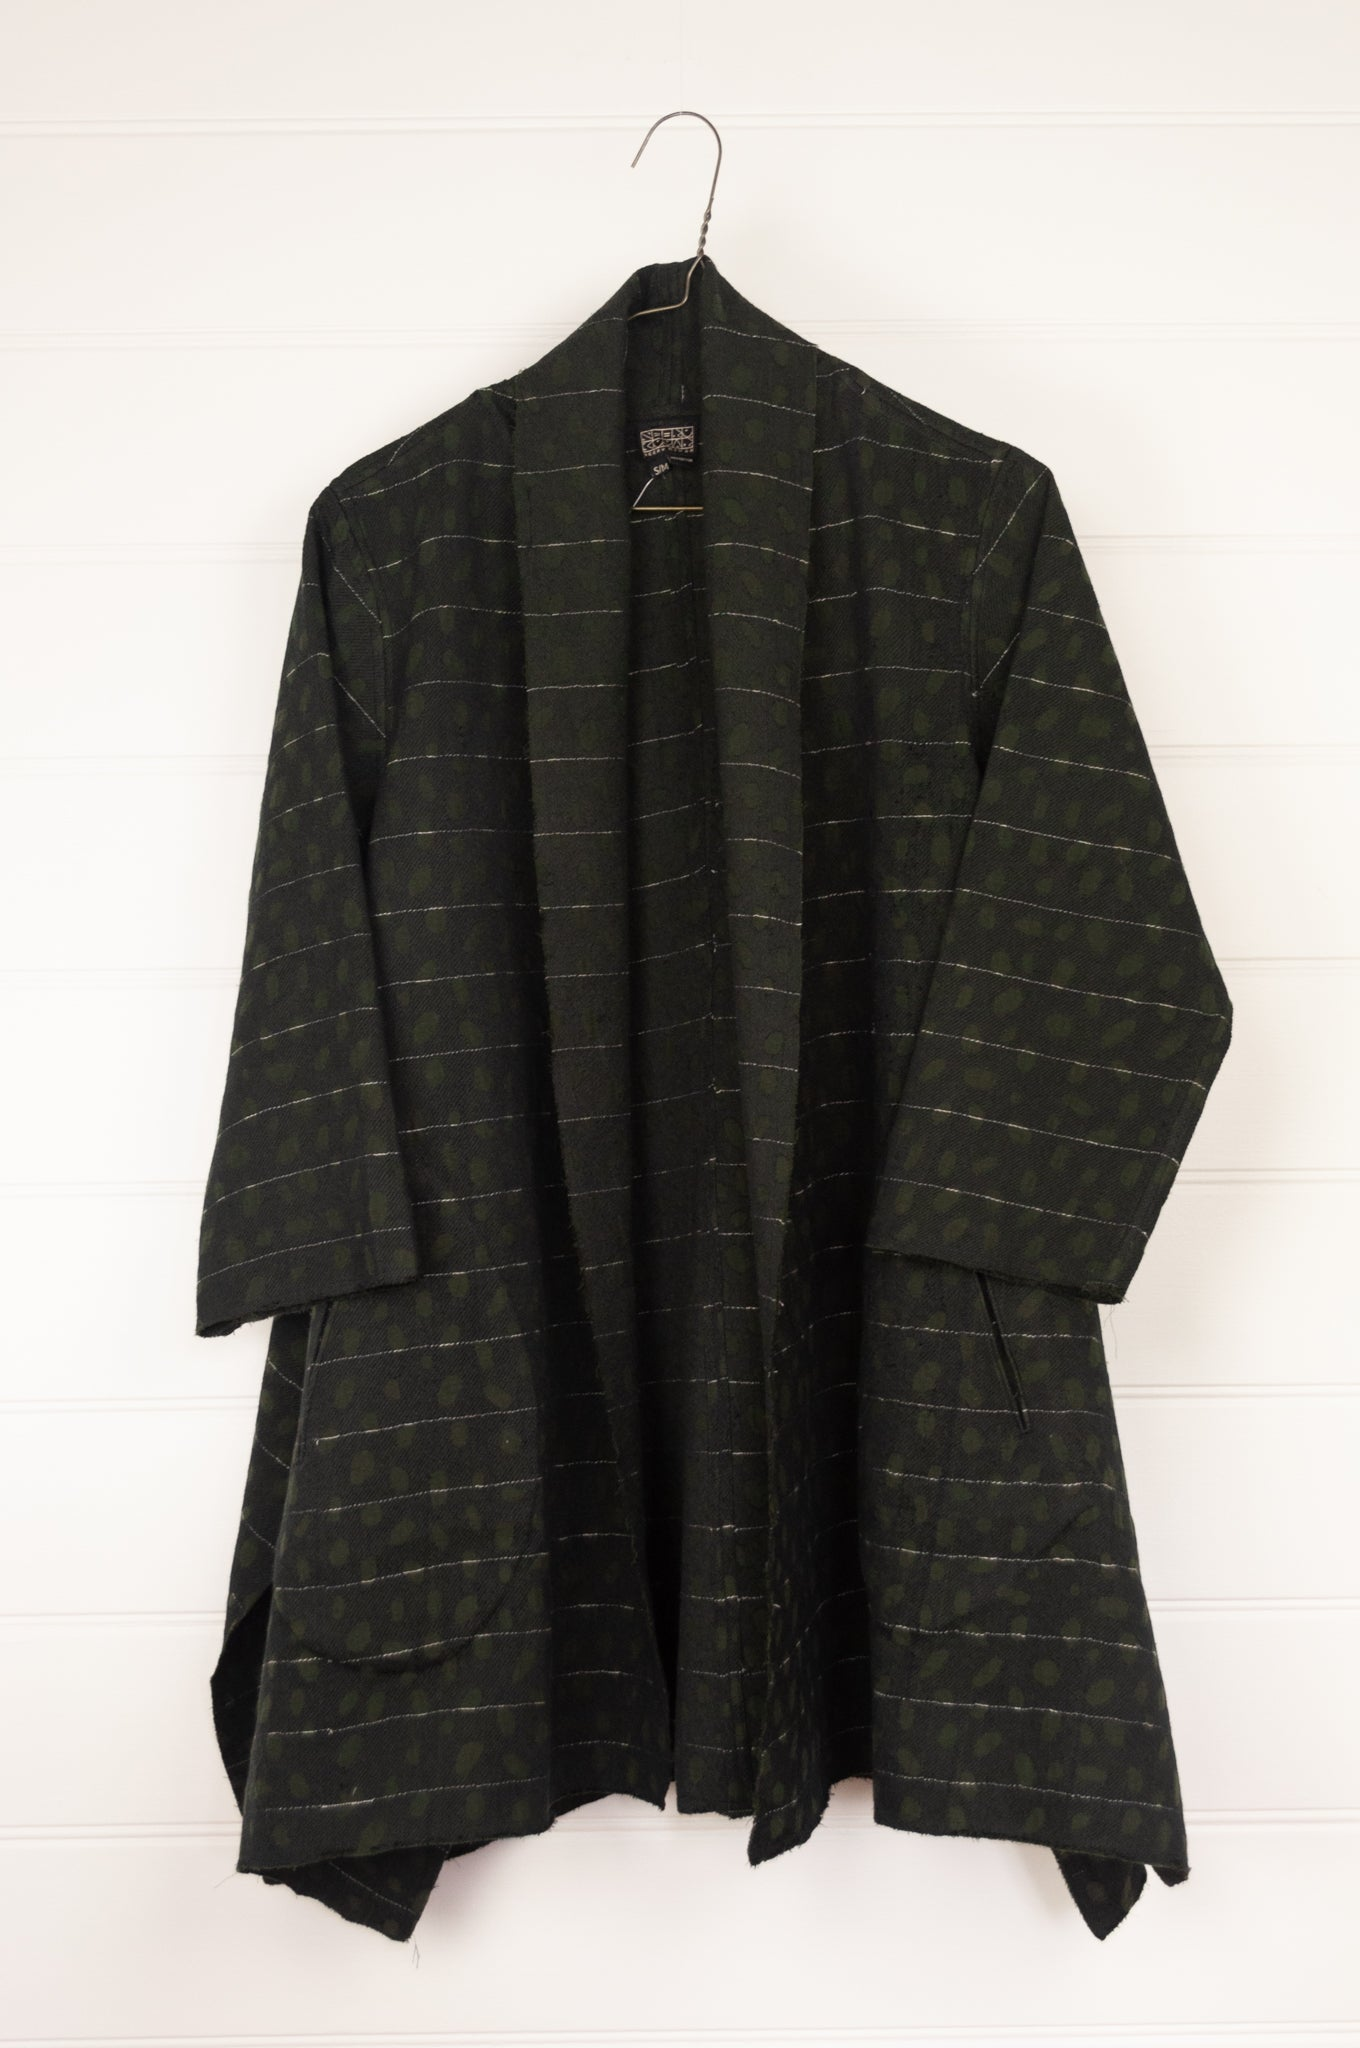 Neeru Kumar Karlens jacket in handloomed cotton jacquard, olive on black with white thread highlights, raw edges to seams, swing A-line shape with shawl collar, pockets and side splits.